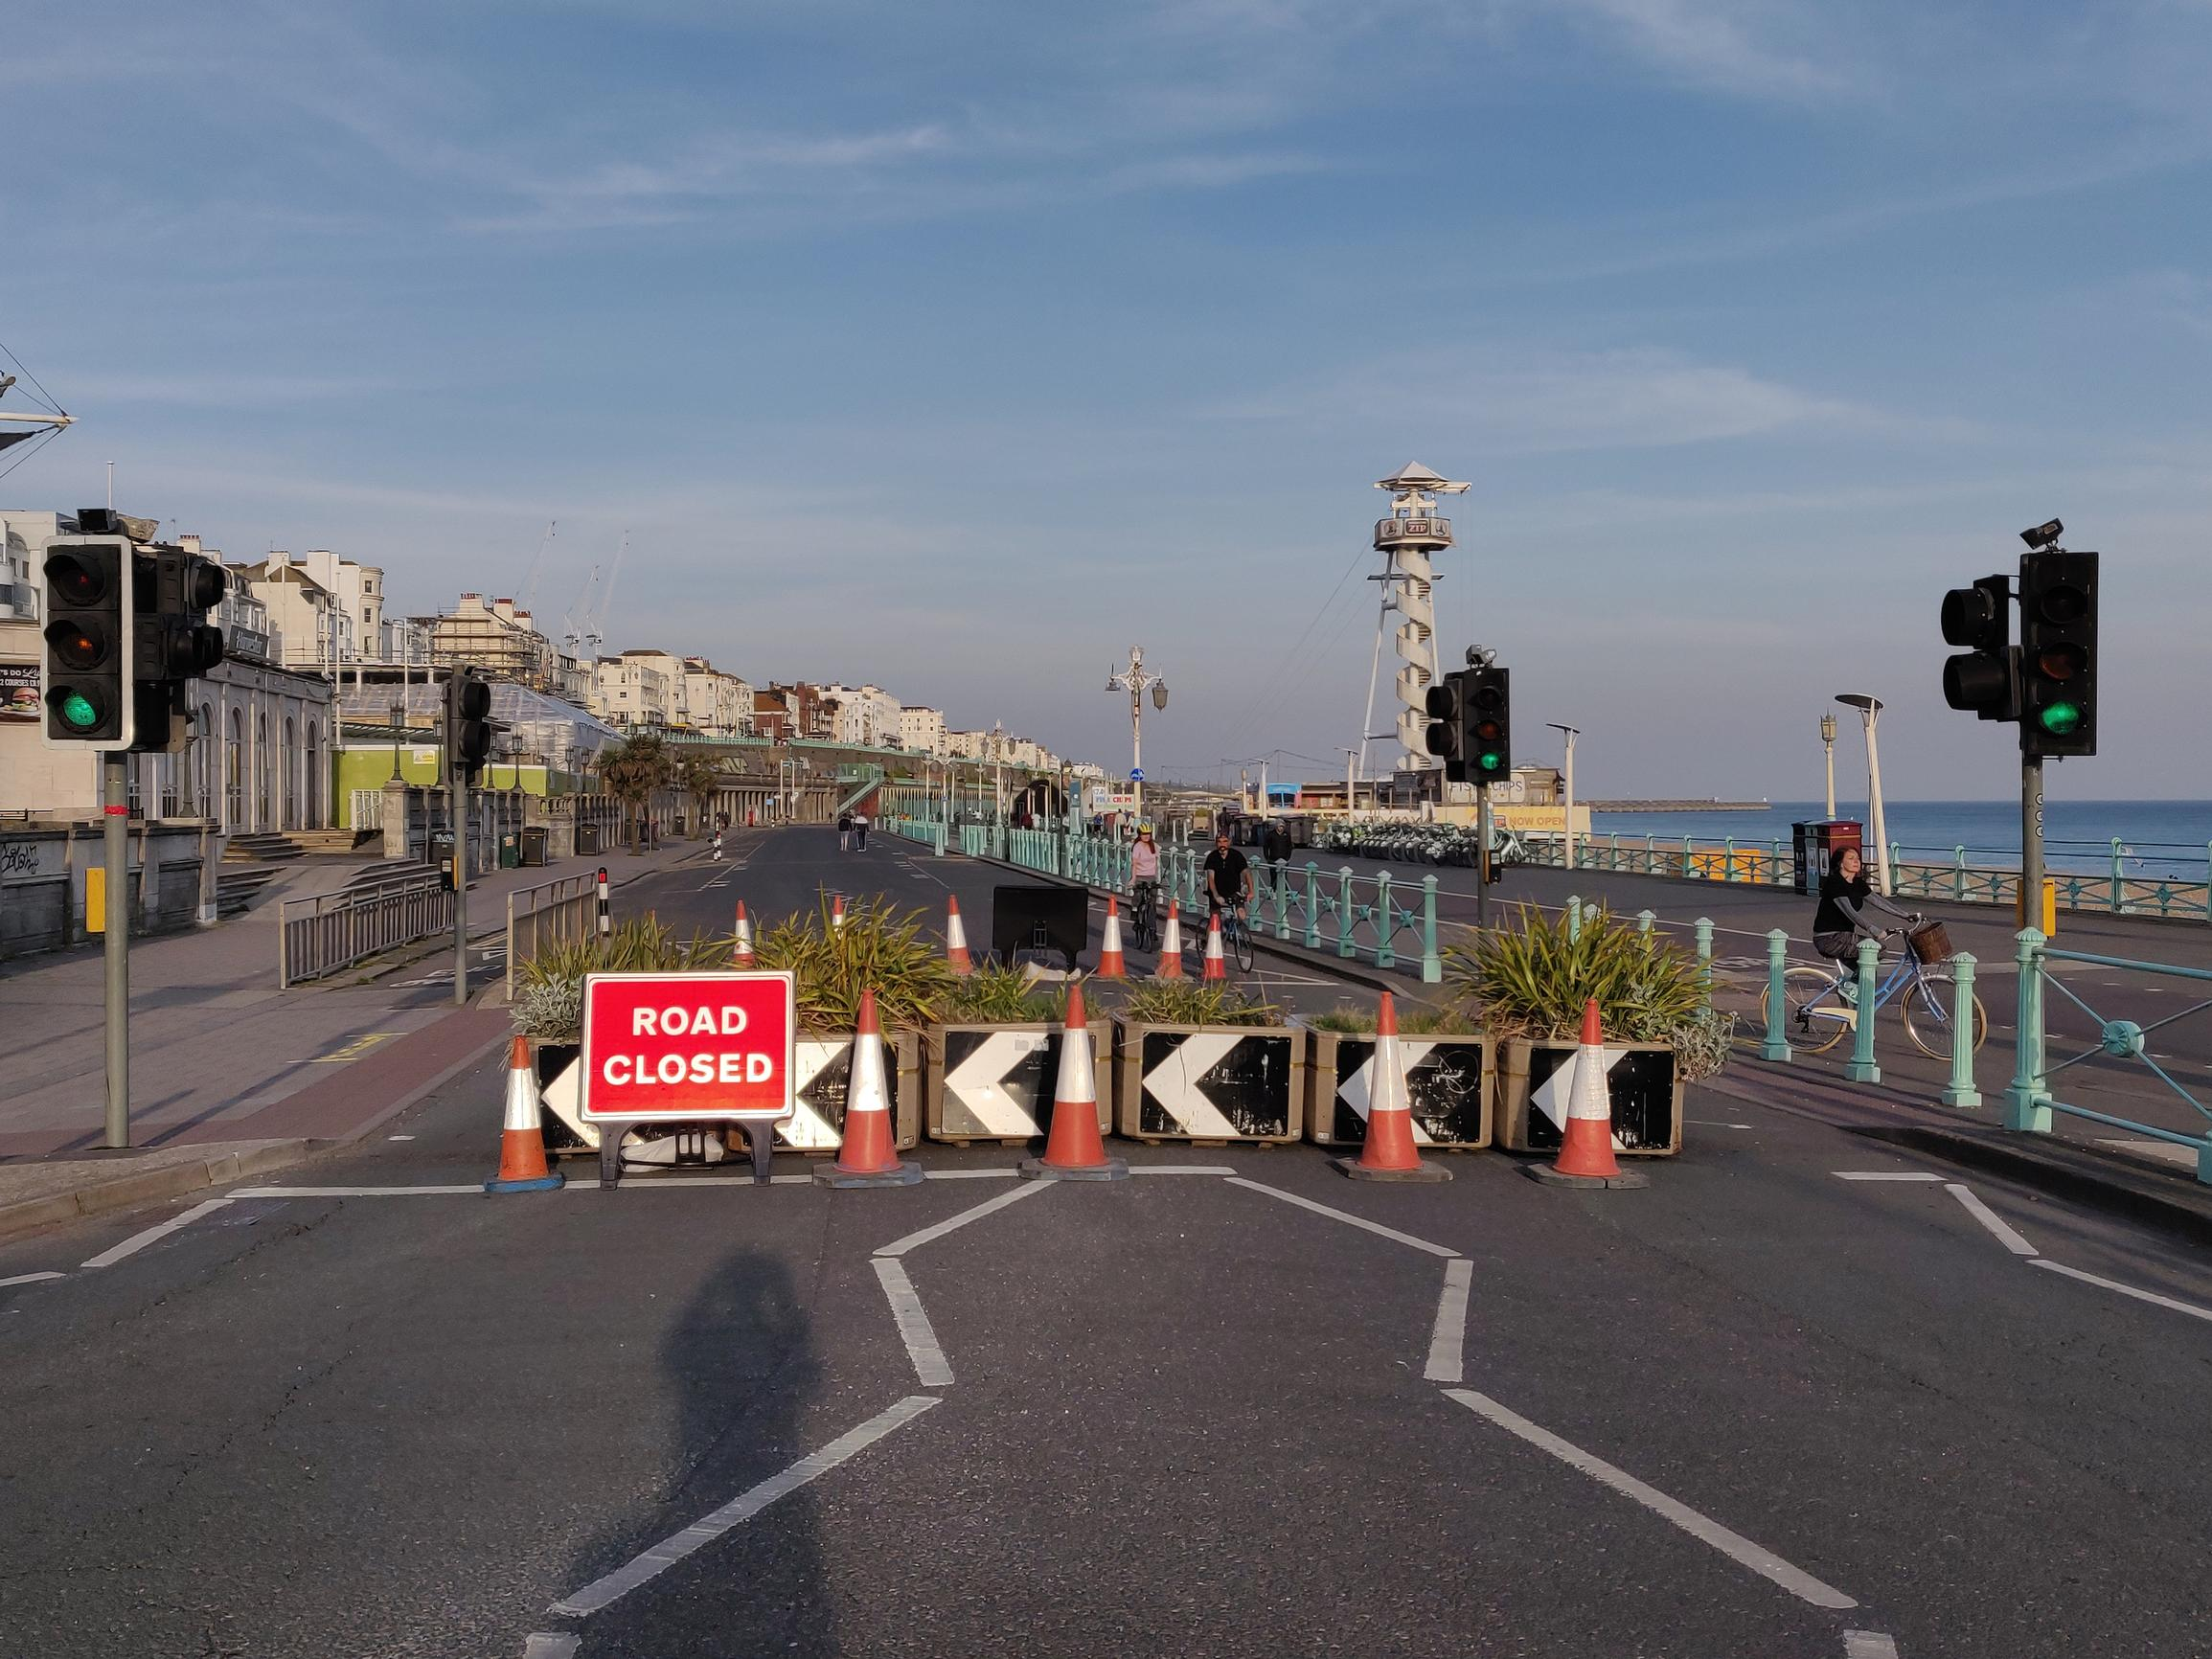 Brighton and Hove was one of the first authorities to re-allocate space from roads to active modes